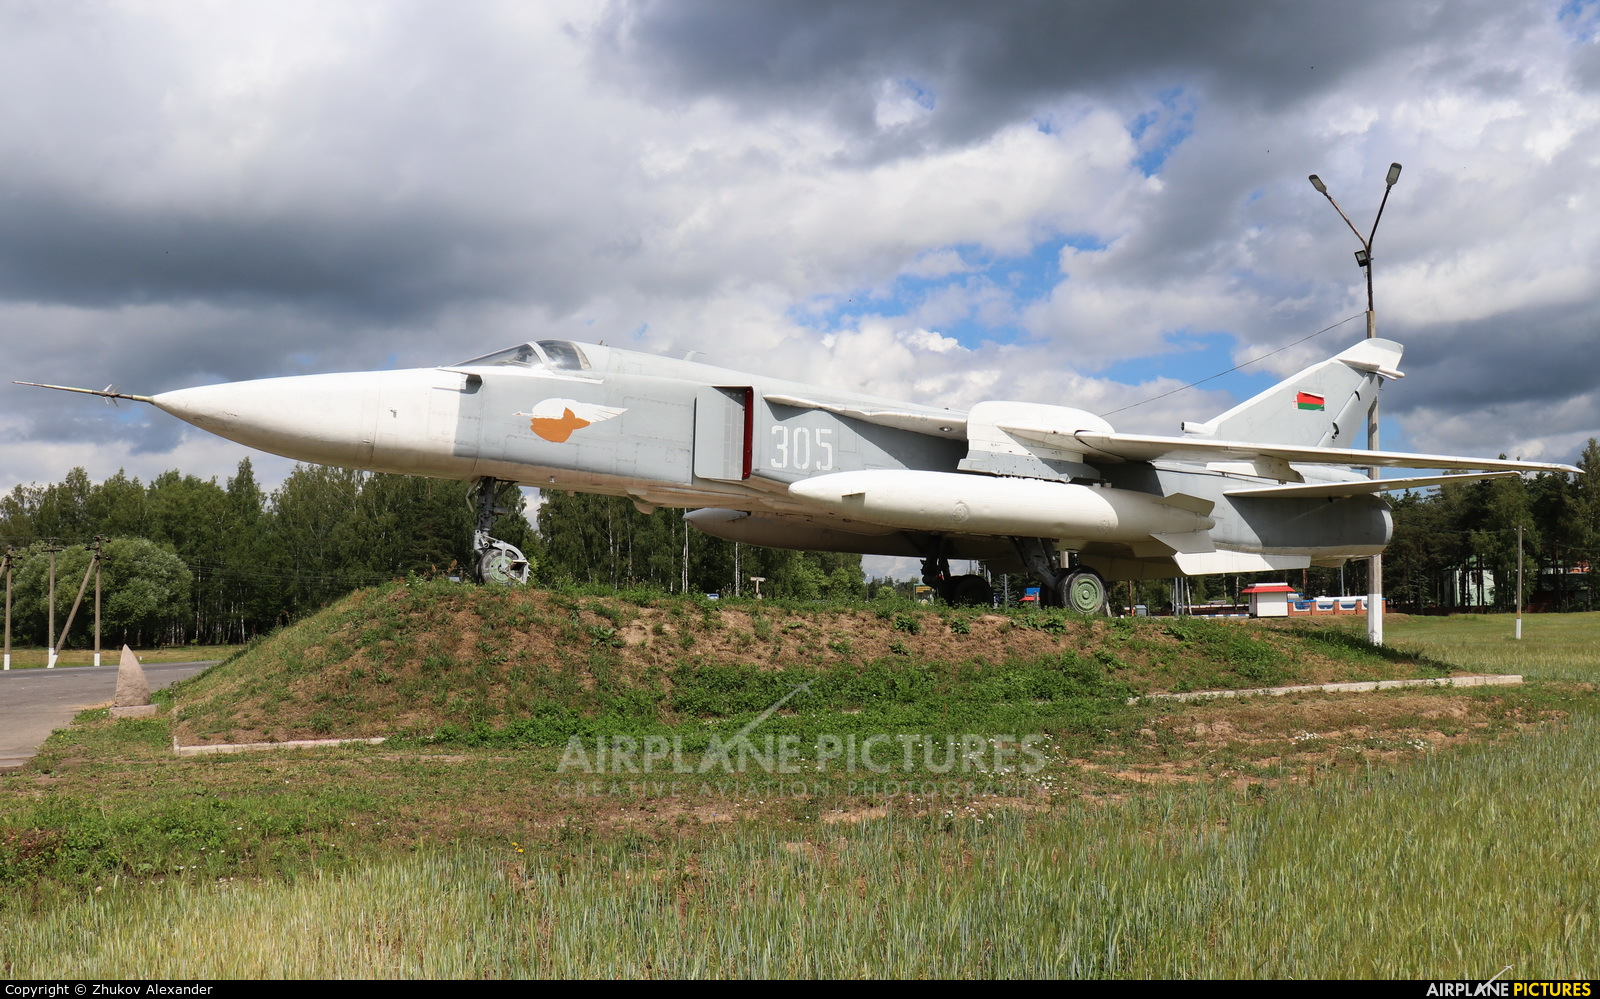 Belarus - Air Force 305 aircraft at Off Airport - Belarus